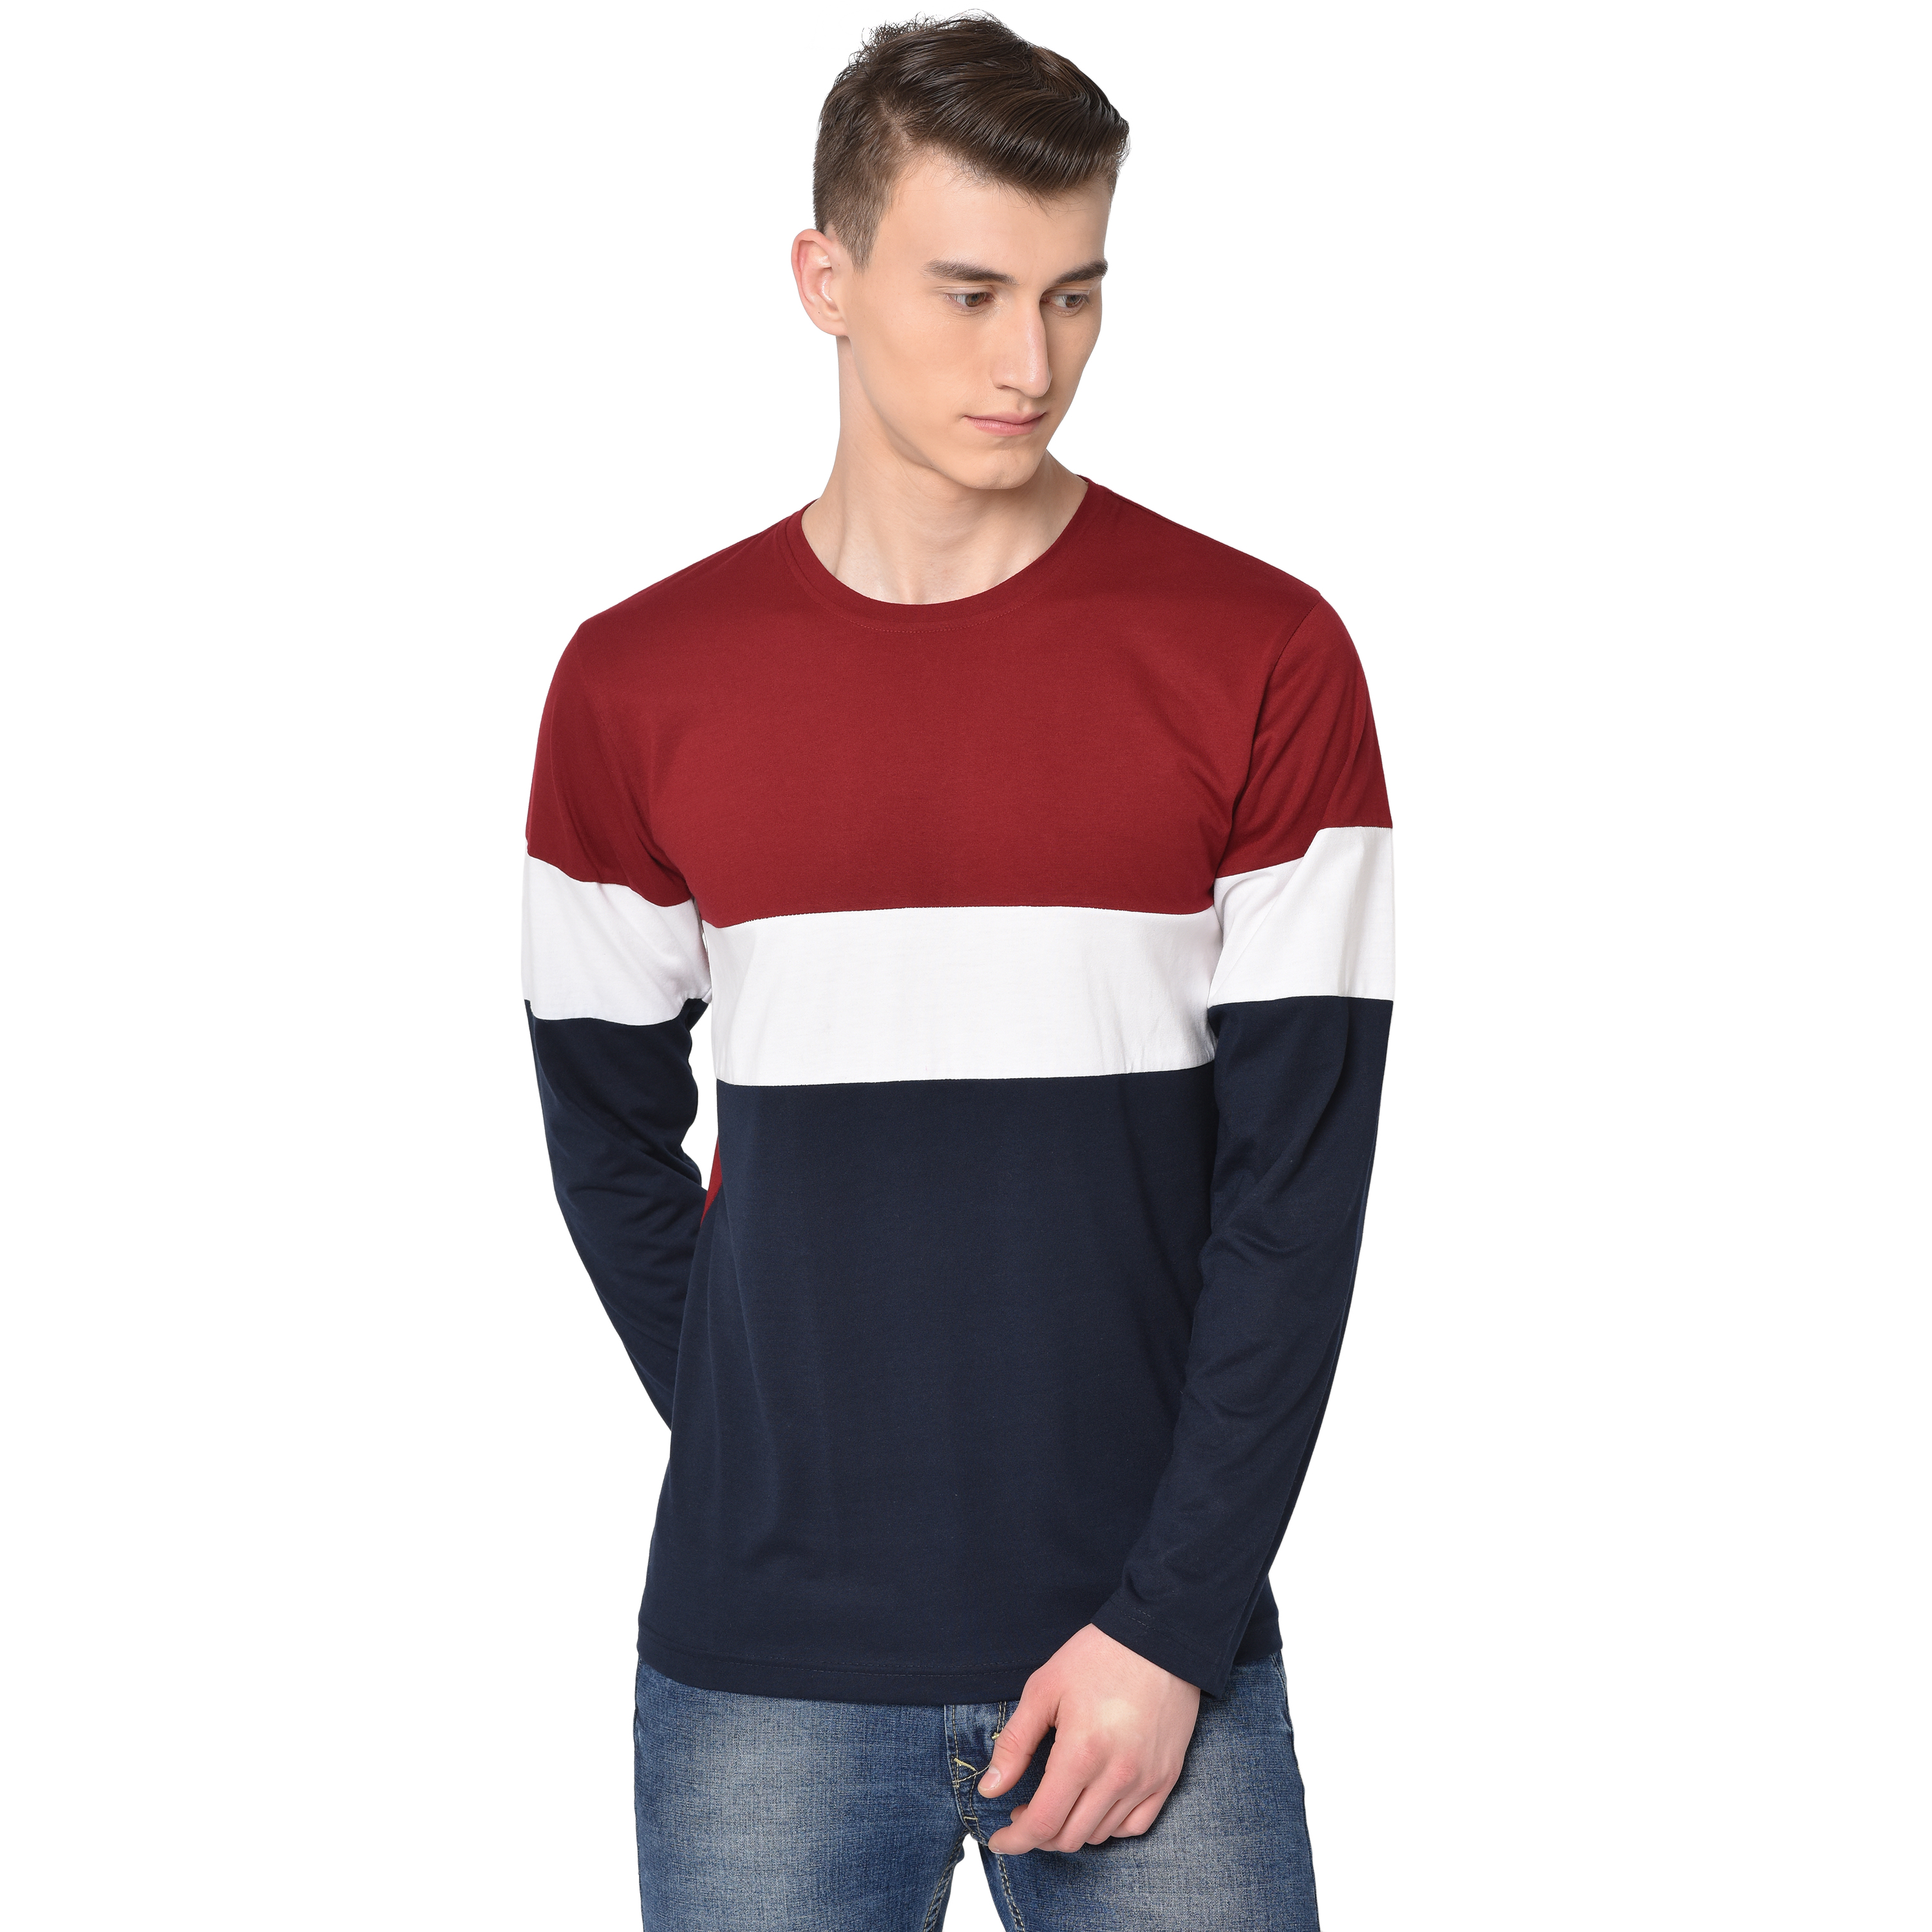 GLito Men's Full Sleeves Round Neck Regular Fit  Cotton 2 Units Combo T-Shirts With Multi Color